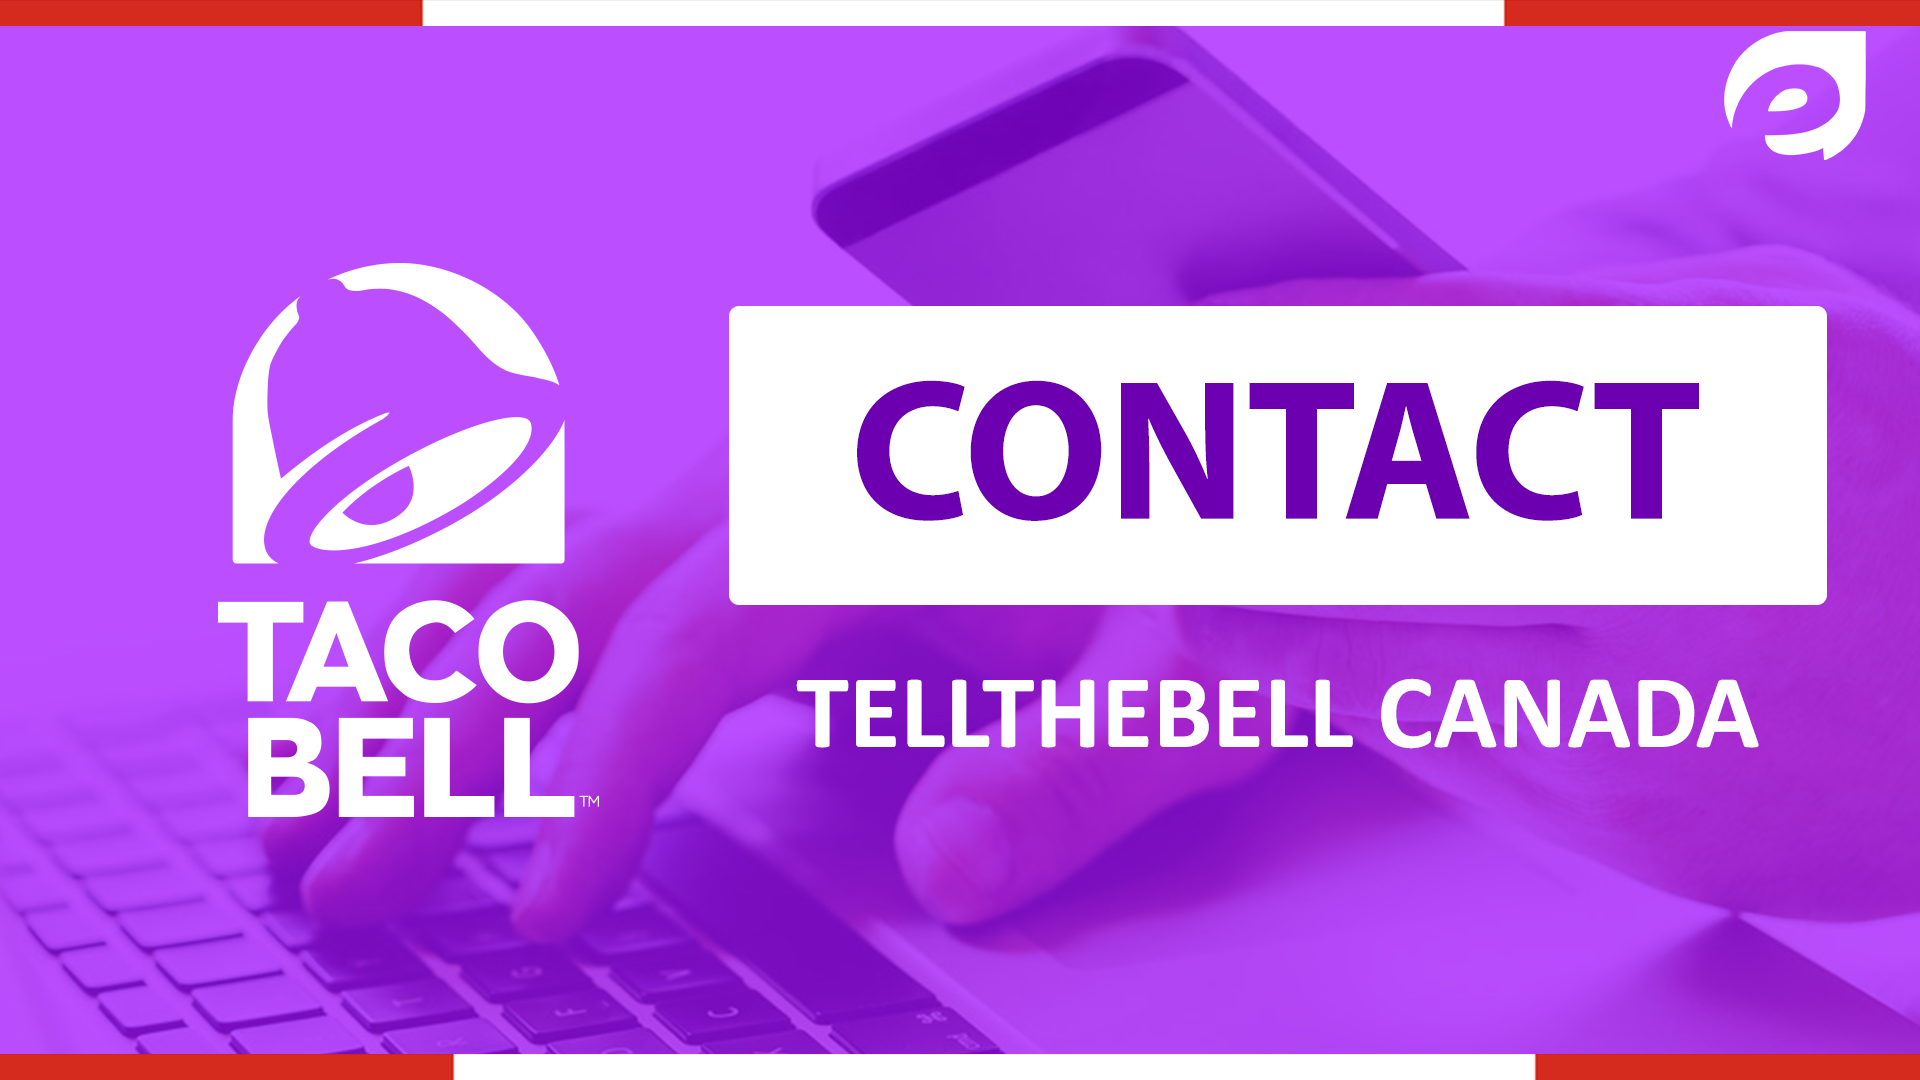 tell the bell canada - contact tacobell ca